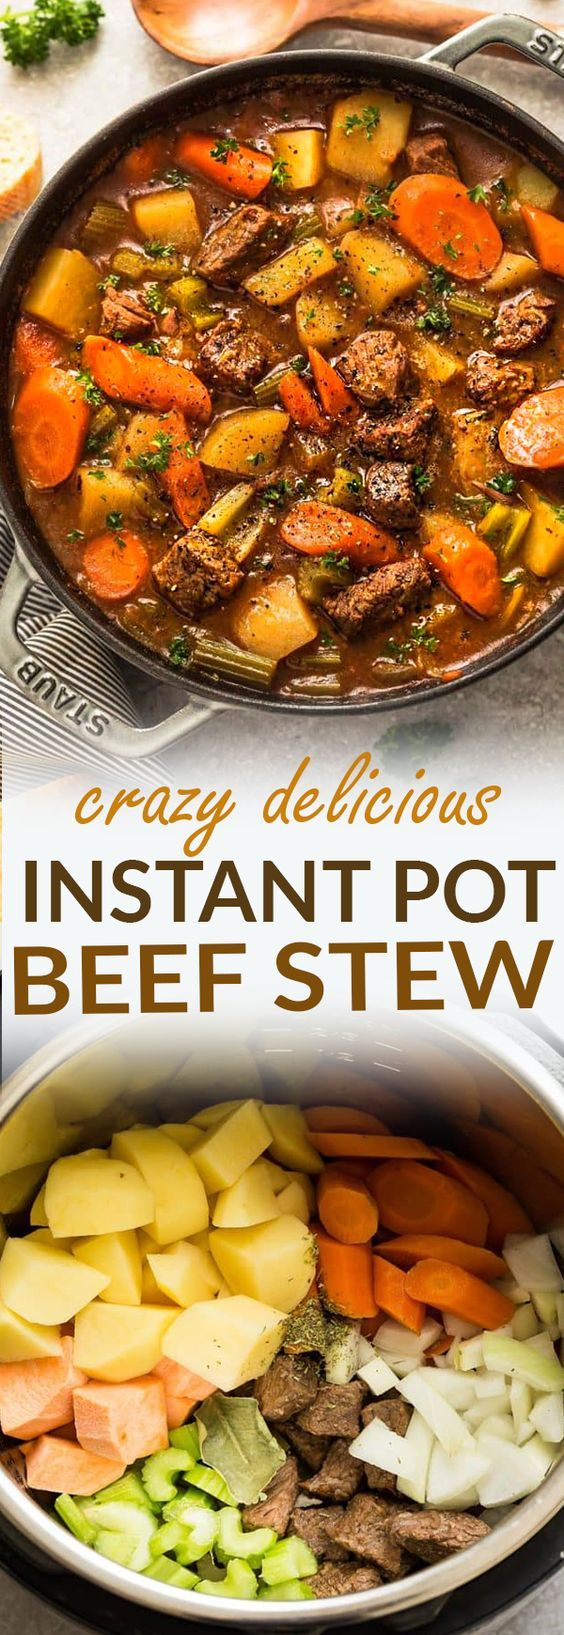 Instant Pot Pressure Cooker Homemade Classic Beef Stew makes the perfect comforting dish on a cold day. Best of all, it's easy to customize and the active cooking time is only 20 minutes on HIGH PRESSURE for the most delicious and tender meat with carrots, potatoes, sweet potatoes and celery. Super comforting for a cozy Sunday and full of amazing flavors that the entire family will love! #beefstew #homemade #comfortfood #stew #winter #fall #cozy #instantpot #instantpotrecipes